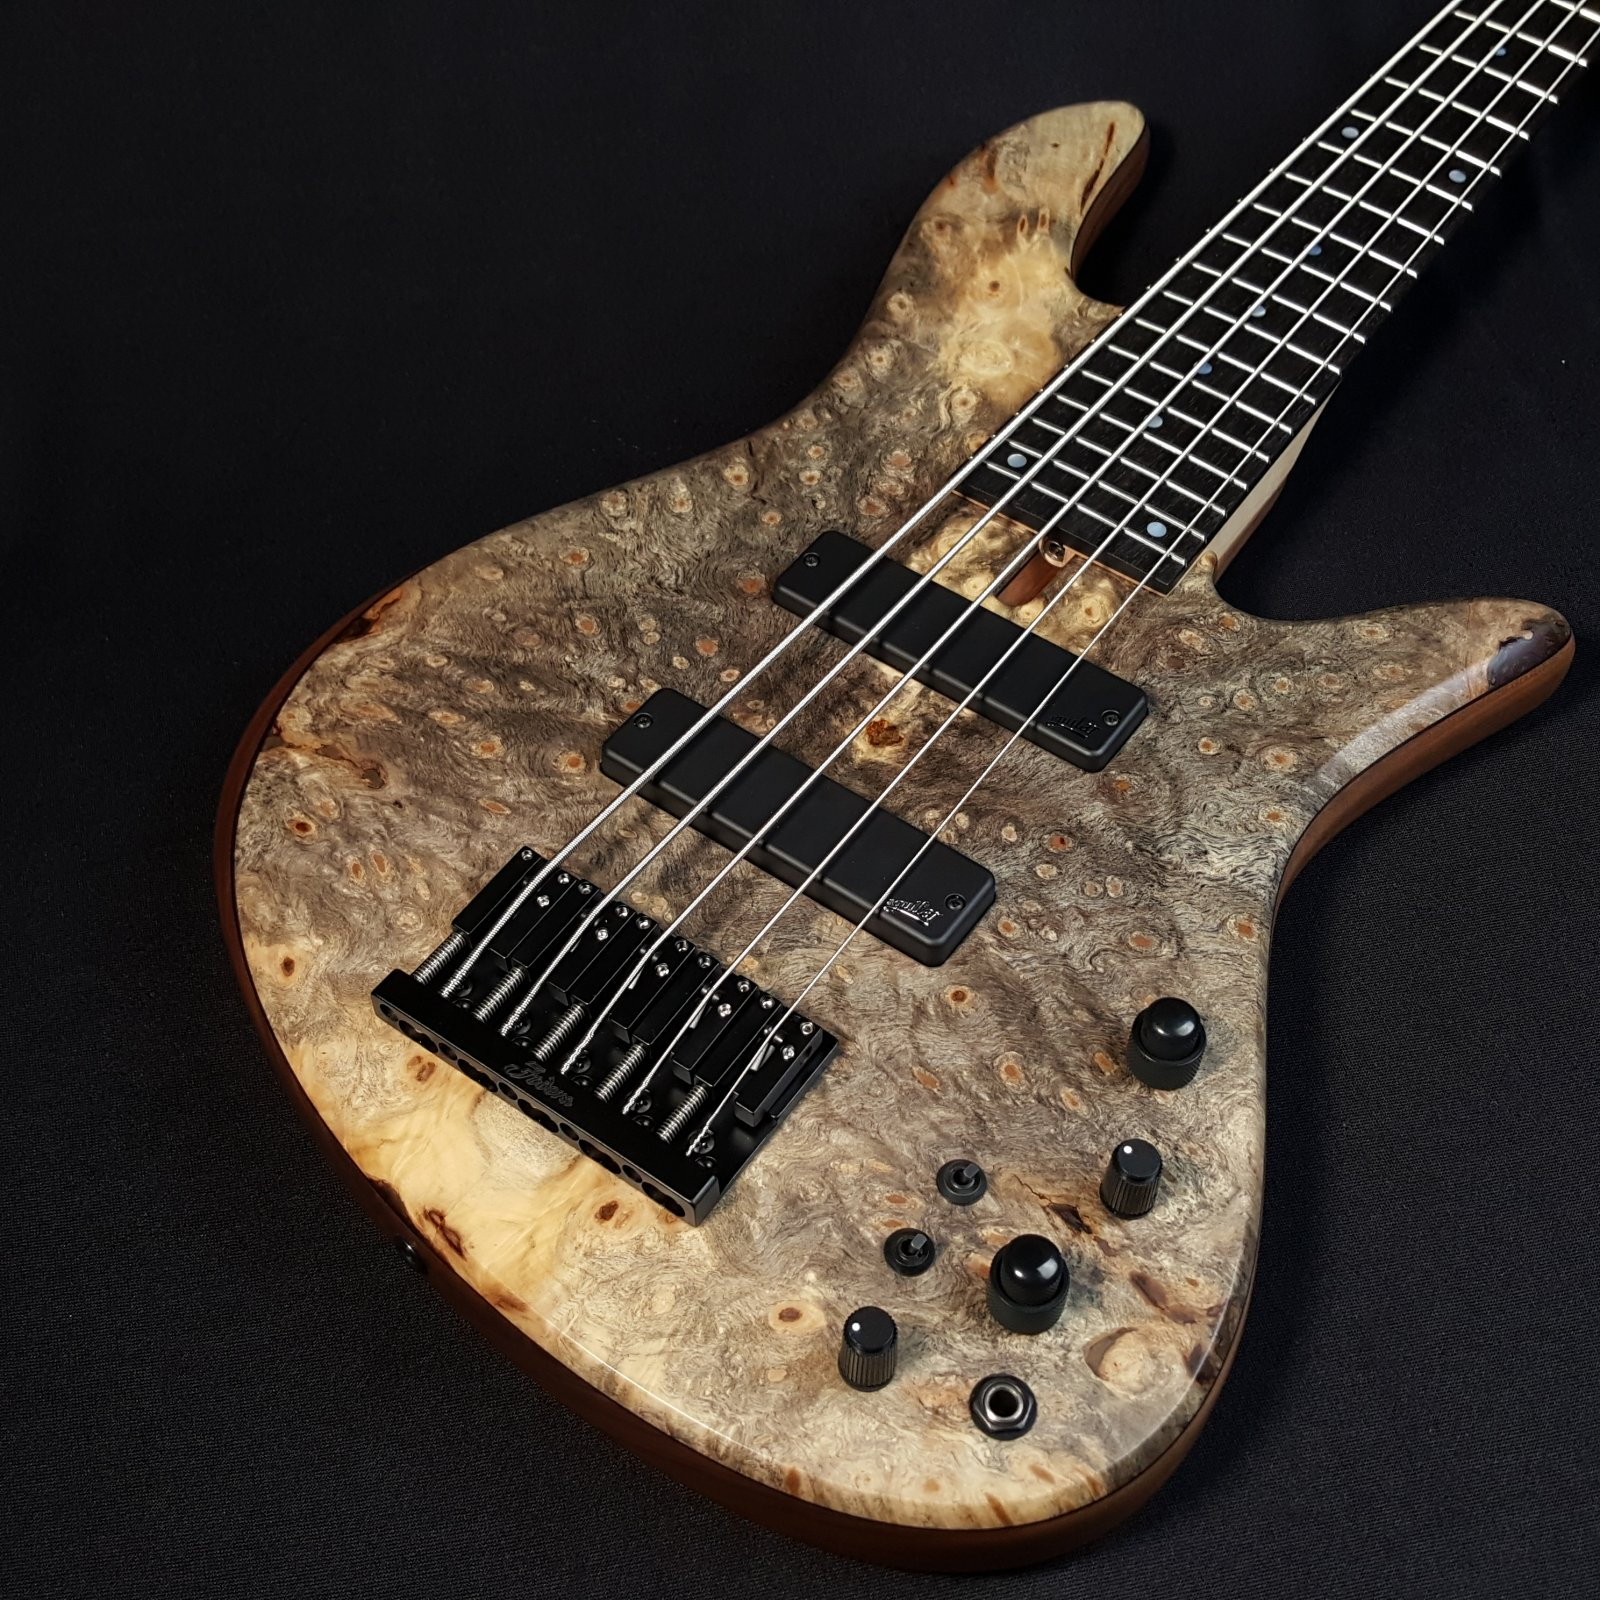 Used Fodera Emperor 5 Standard Special Buckeye Burl 5 String Bass With Case